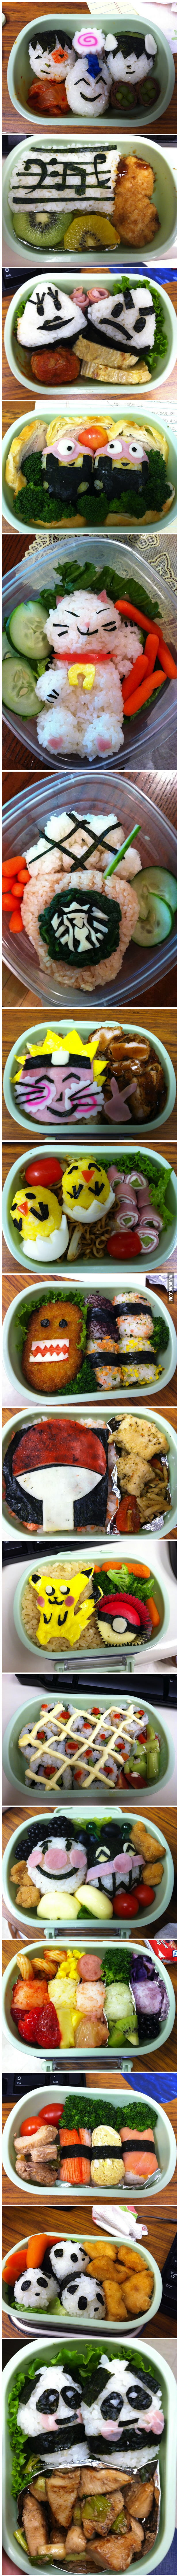 My friend makes these lunches for her kids...